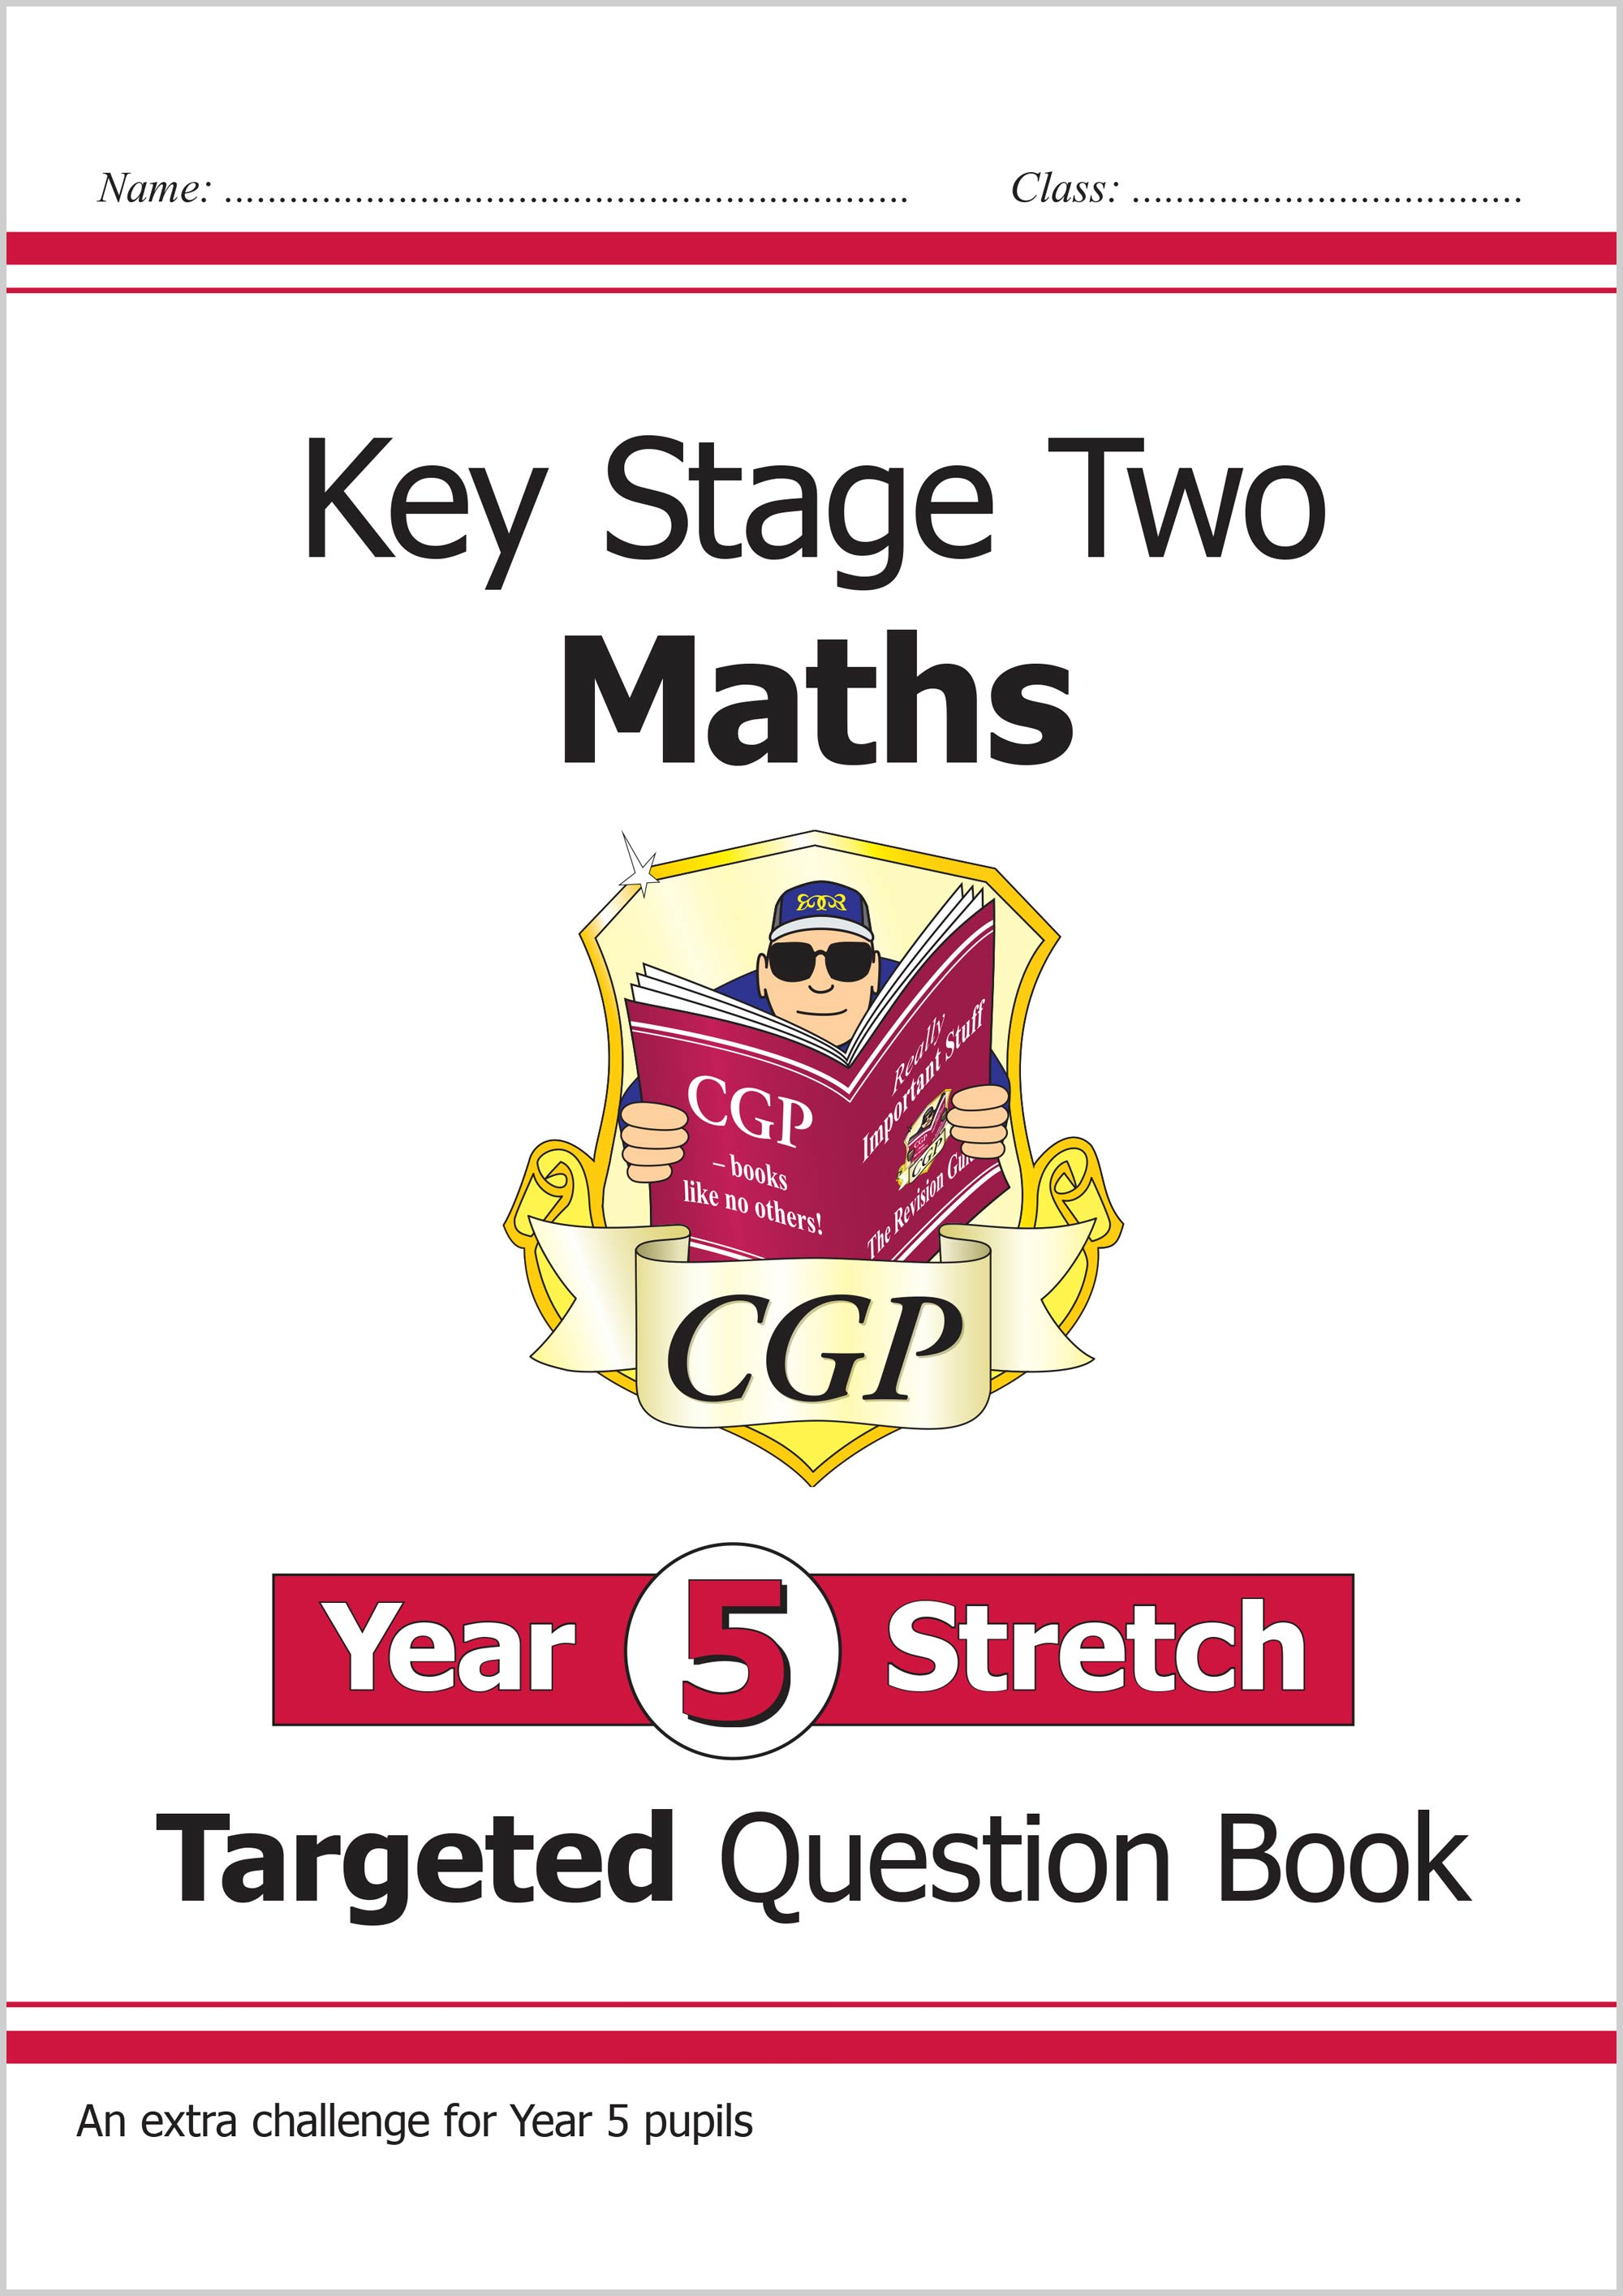 M5HQ21 - New KS2 Maths Targeted Question Book: Challenging Maths - Year 5 Stretch